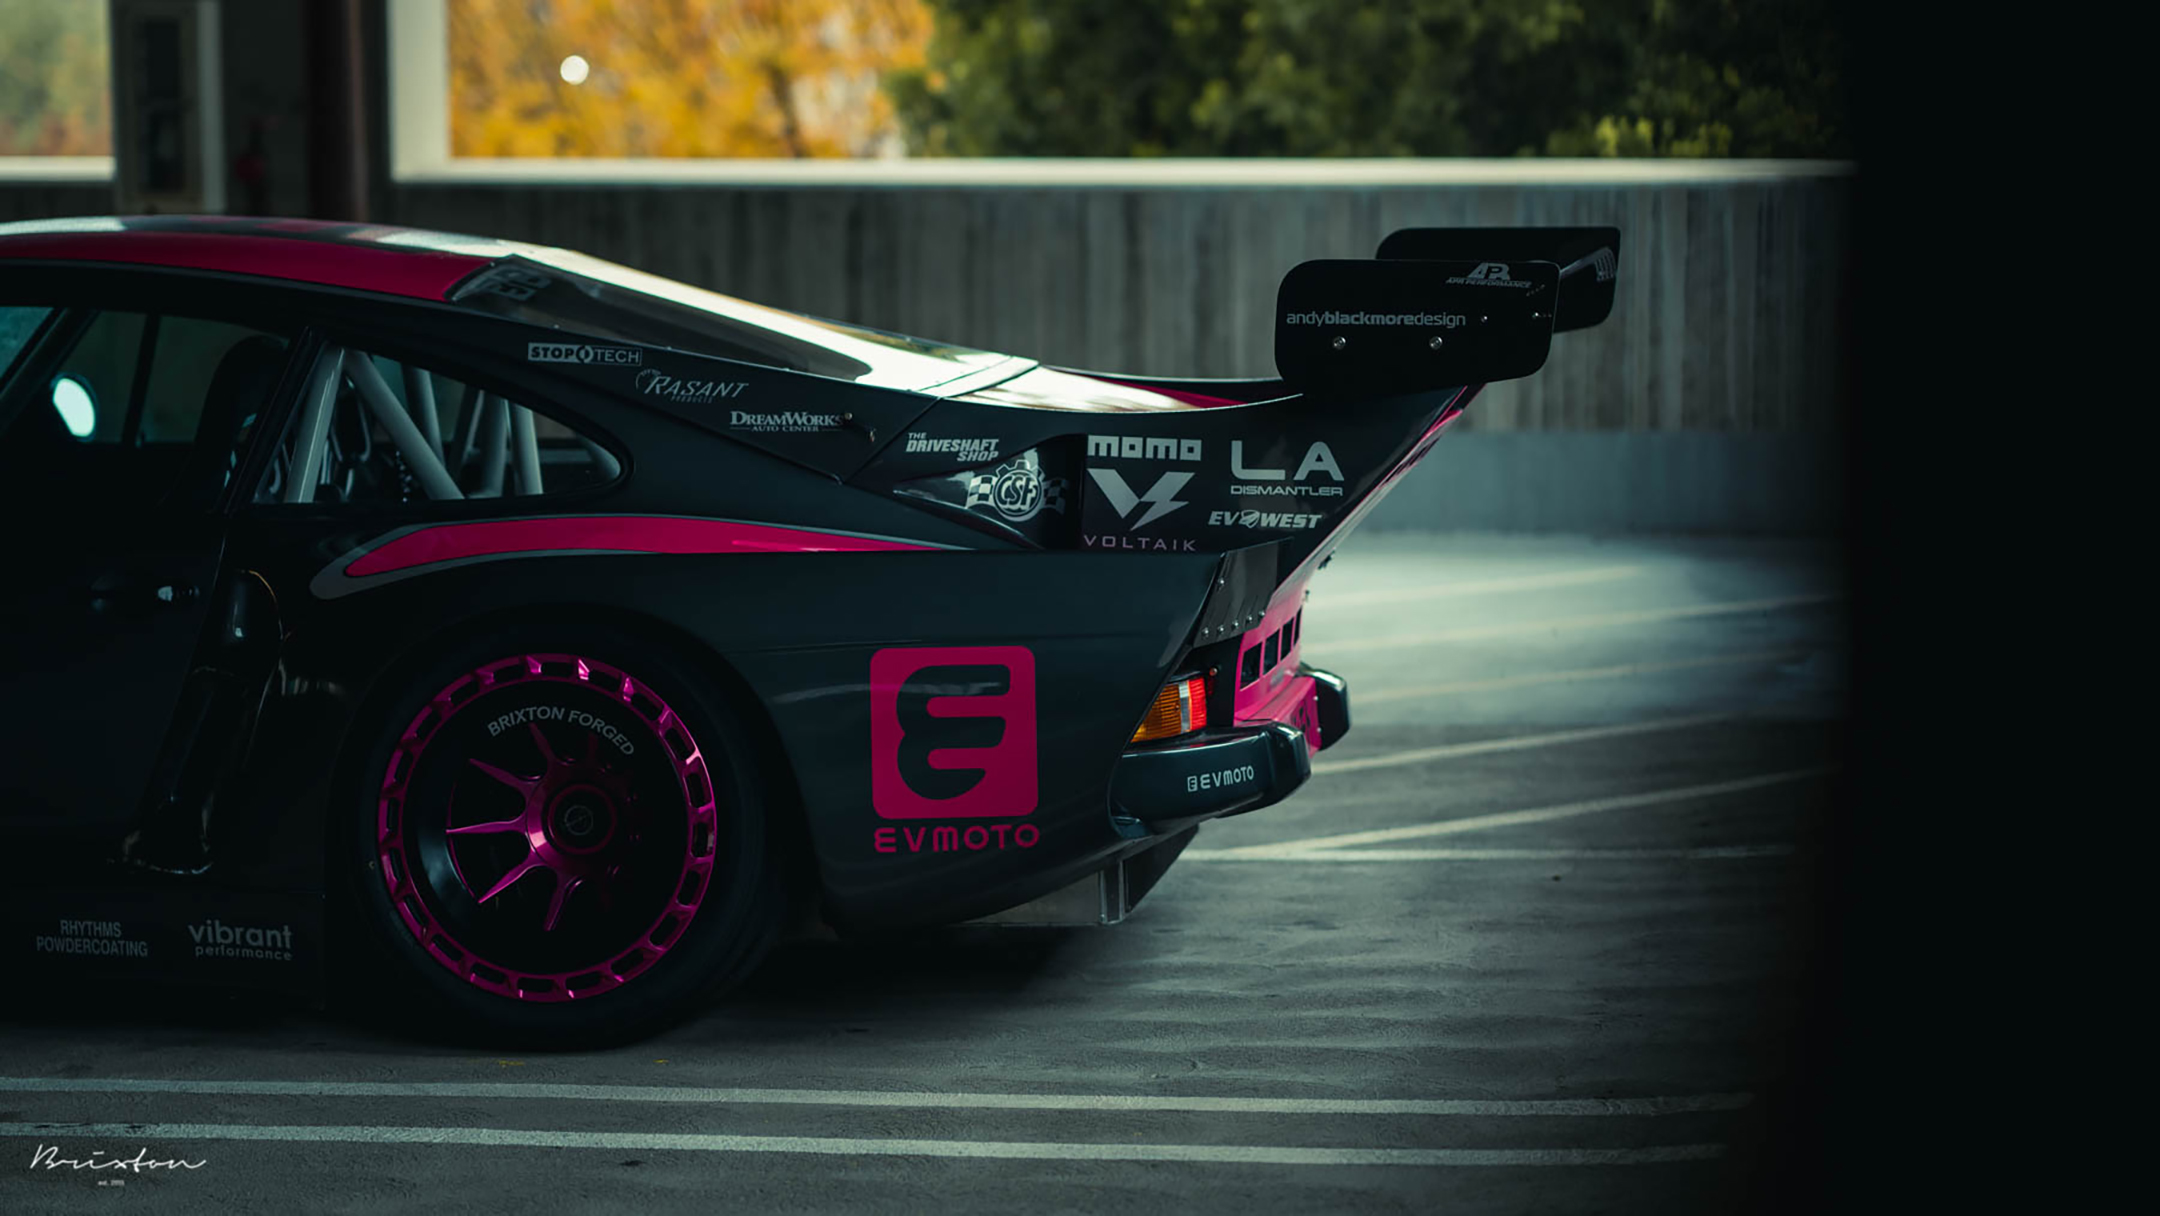 Bisimoto Porsche 935 K3V - 2020 - rear side view